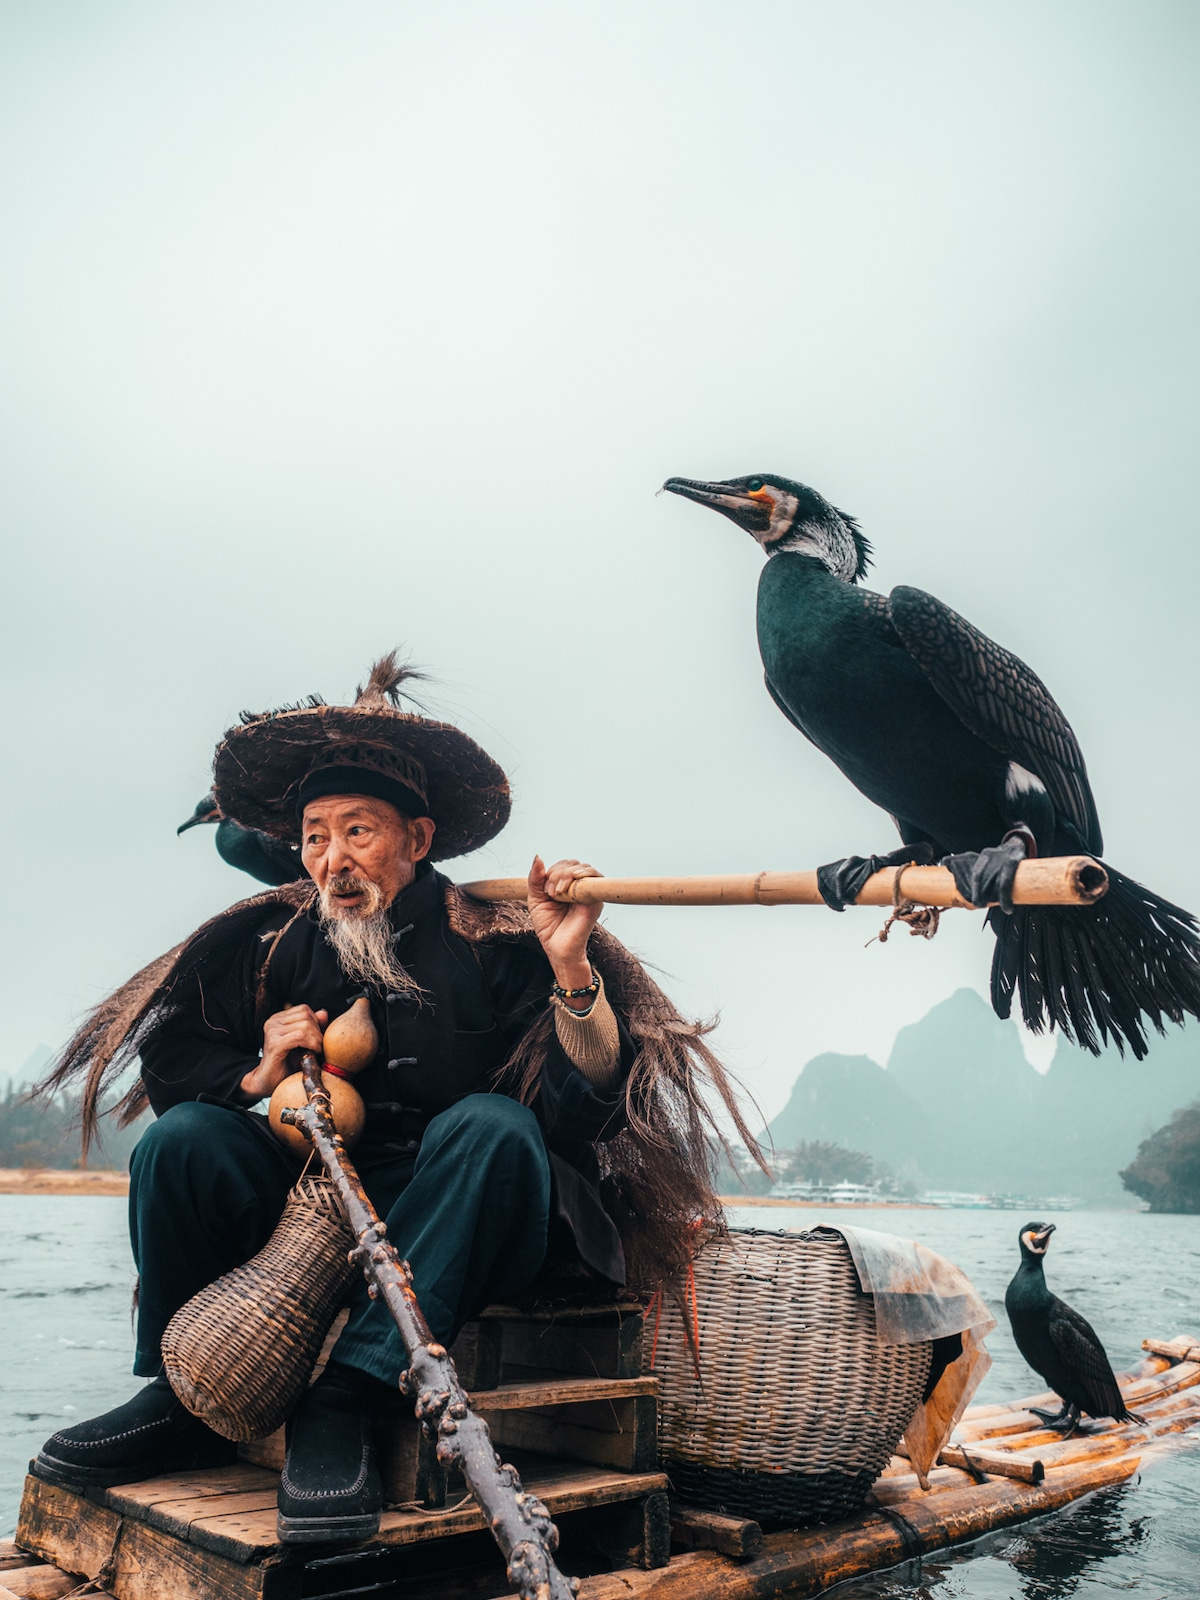 Traditional Cormorant Fishing in Yangshuo, China